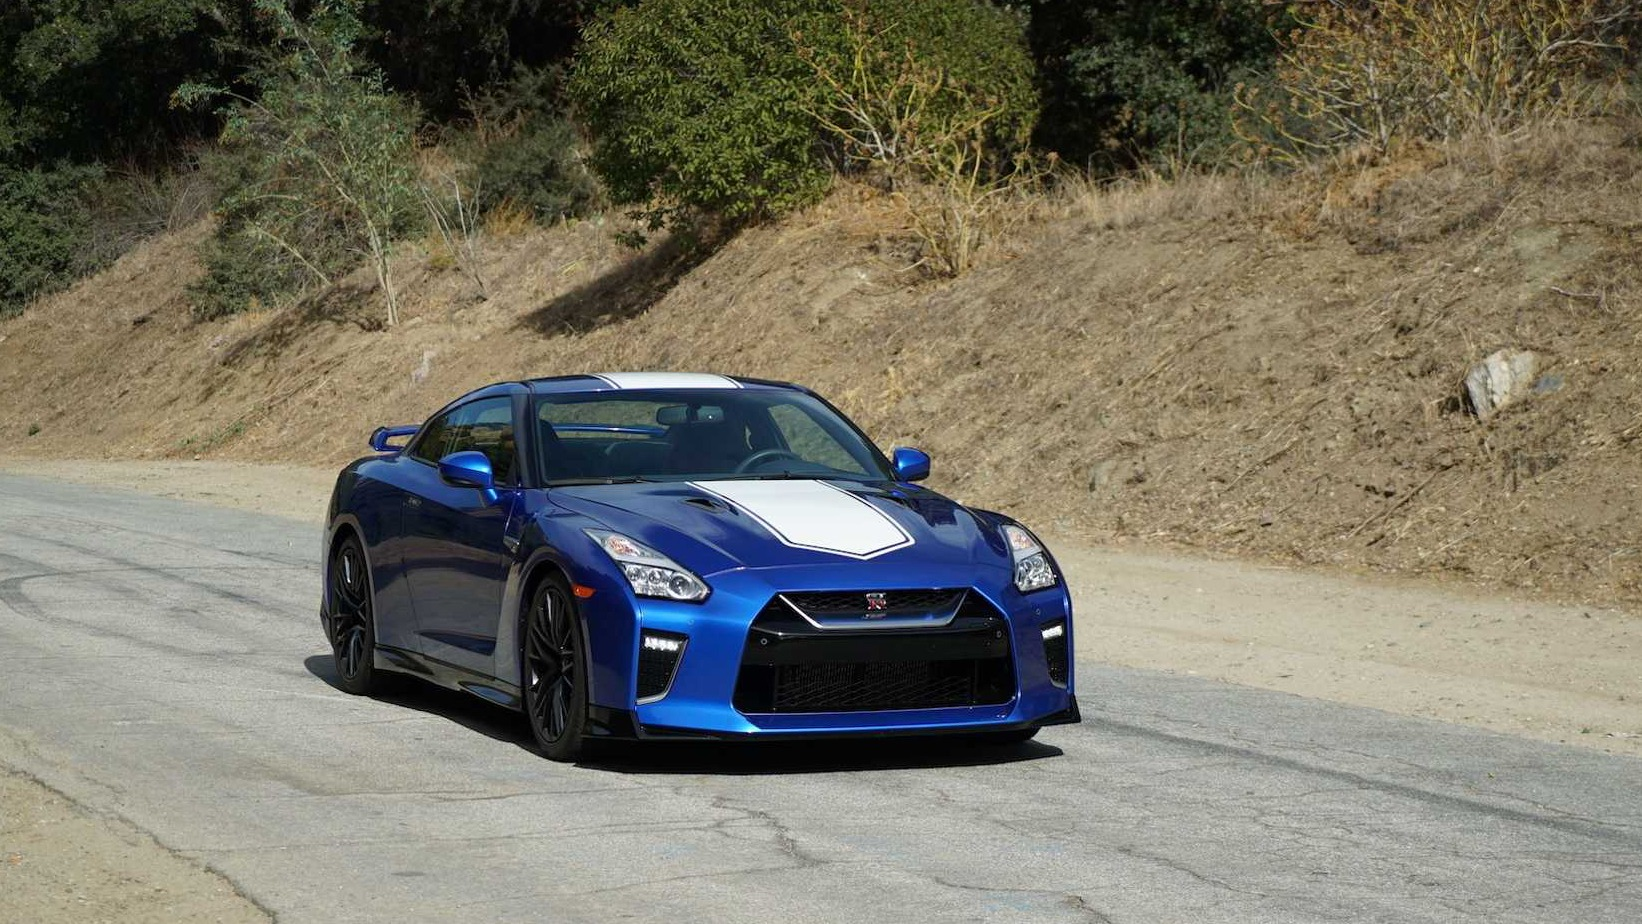 Used 2020 Nissan GT-R 50TH ANNY EDITION/ 3.8L TT V6 / AWD / NAV / BOSE / REARVIEW for sale Sold at Formula Imports in Charlotte NC 28227 4